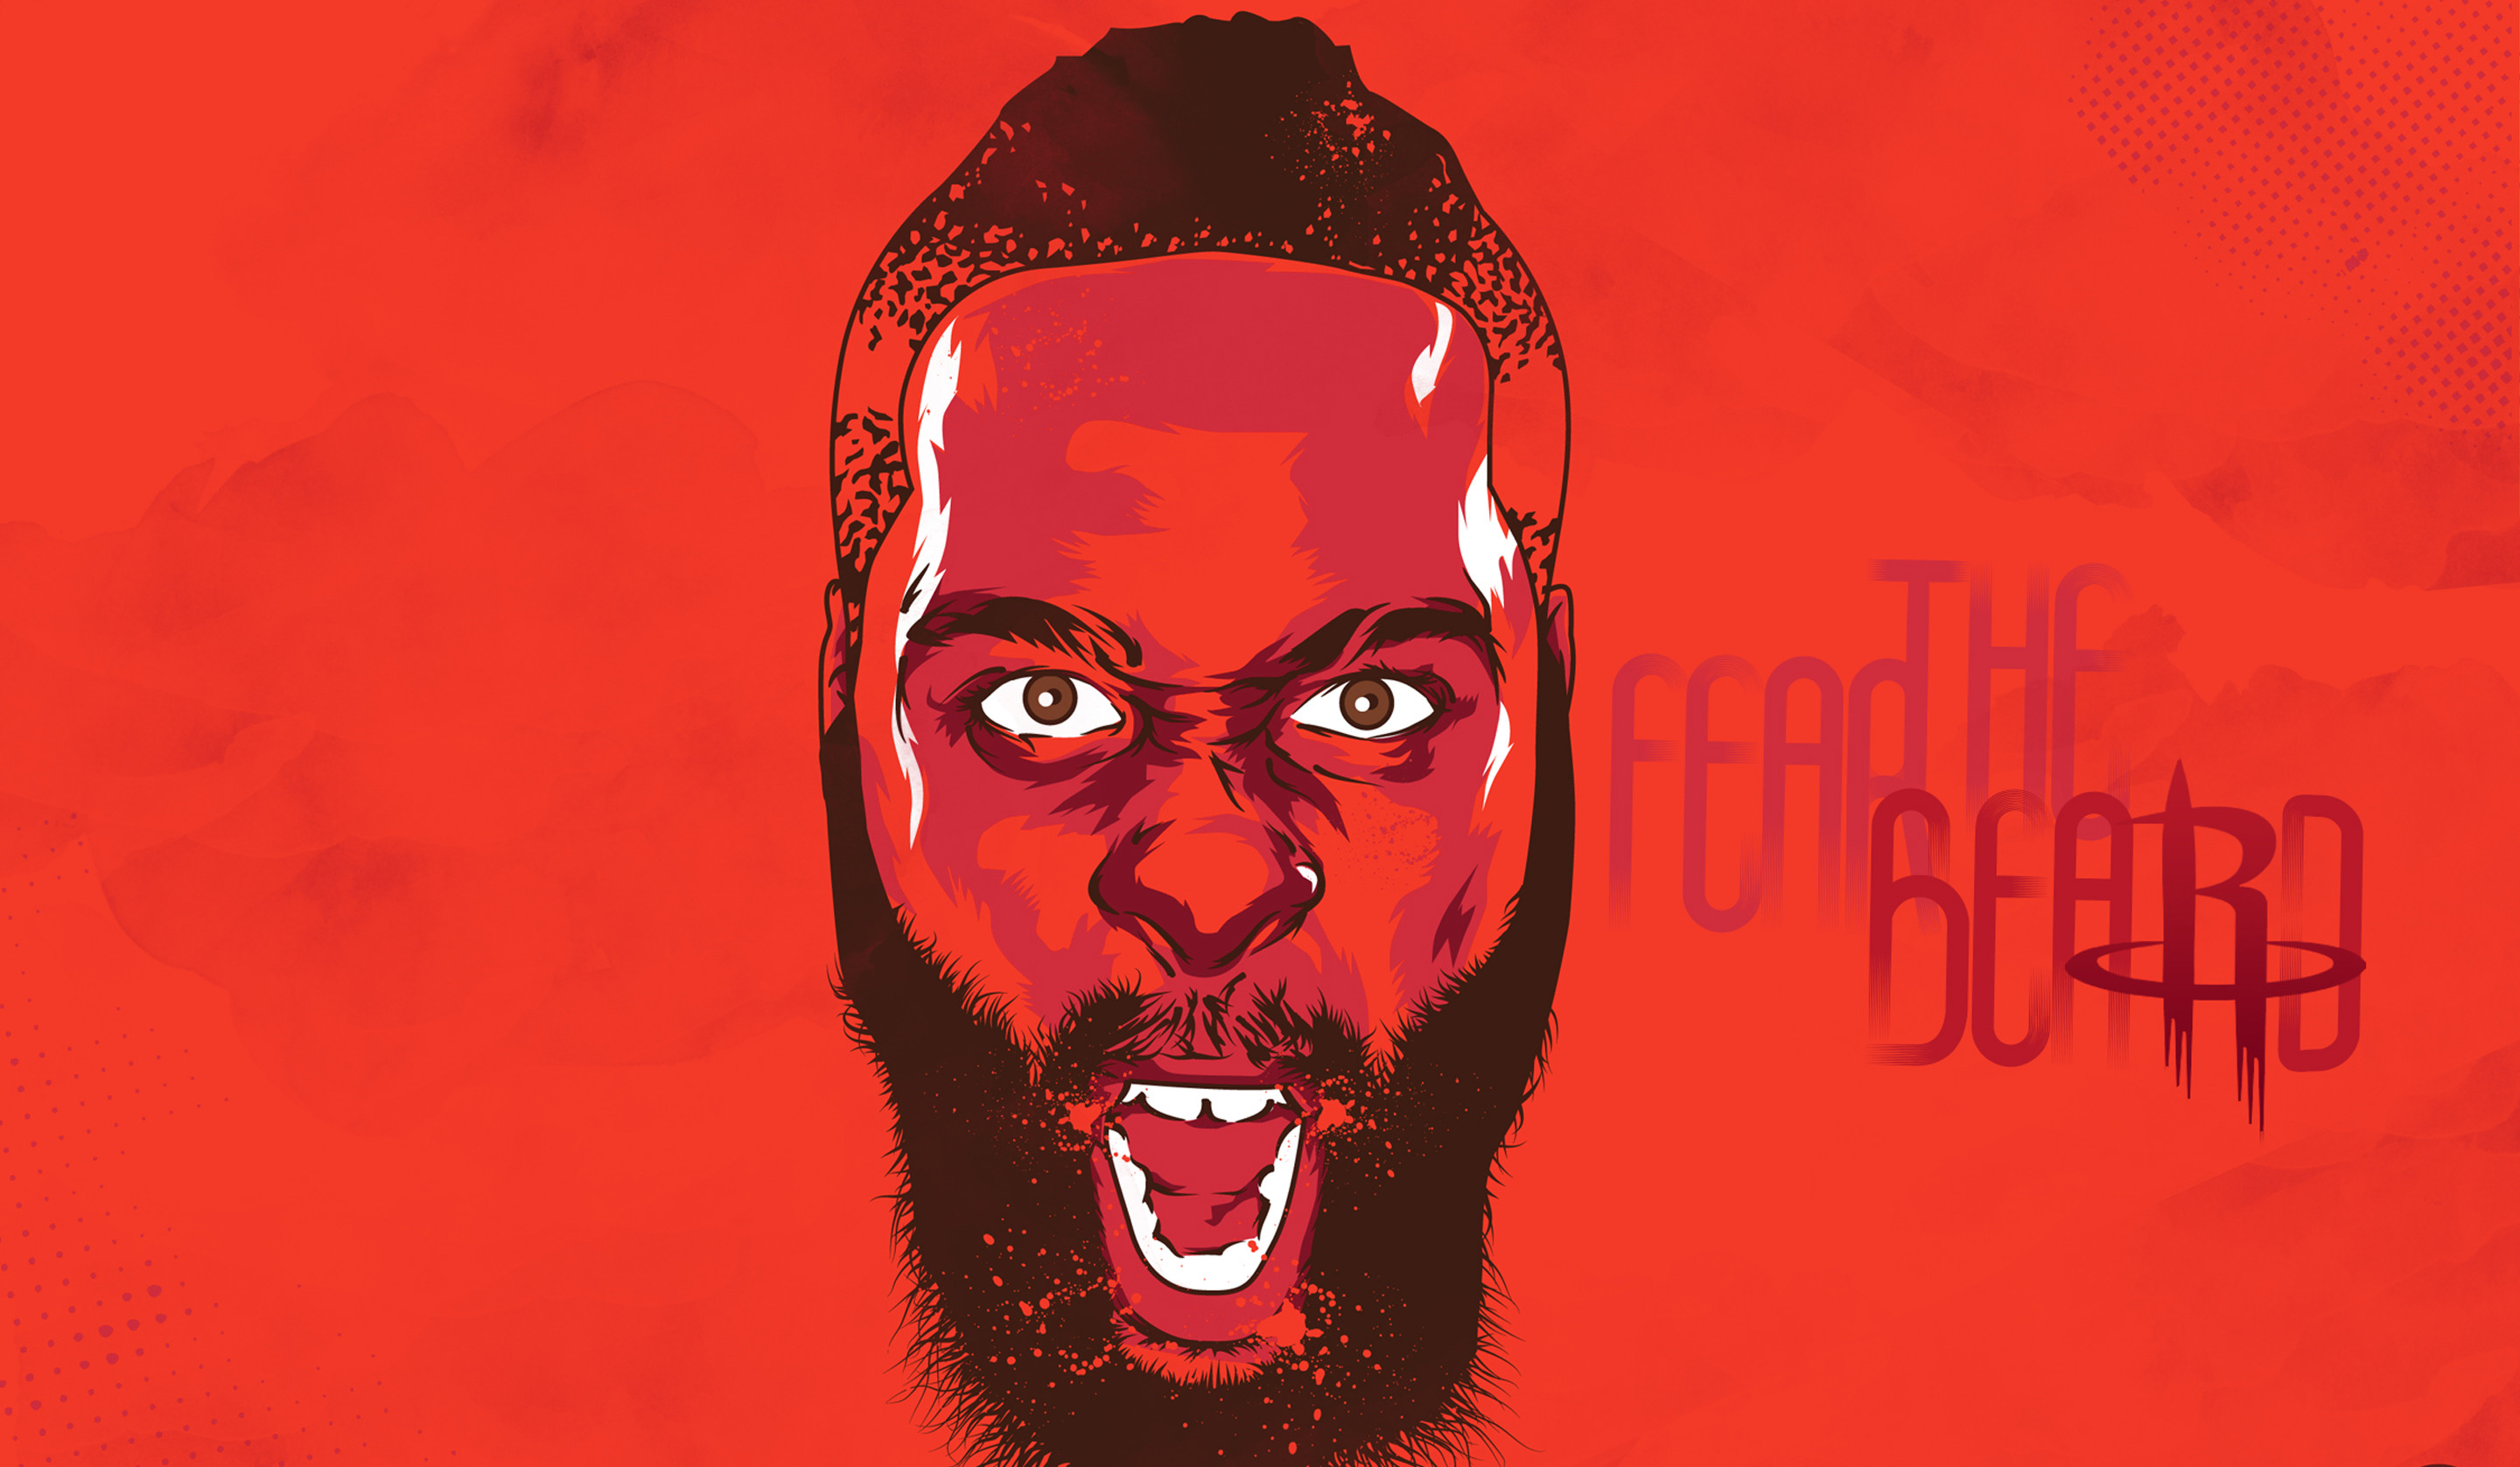 2880x1677 HD James Harden Wallpapers.